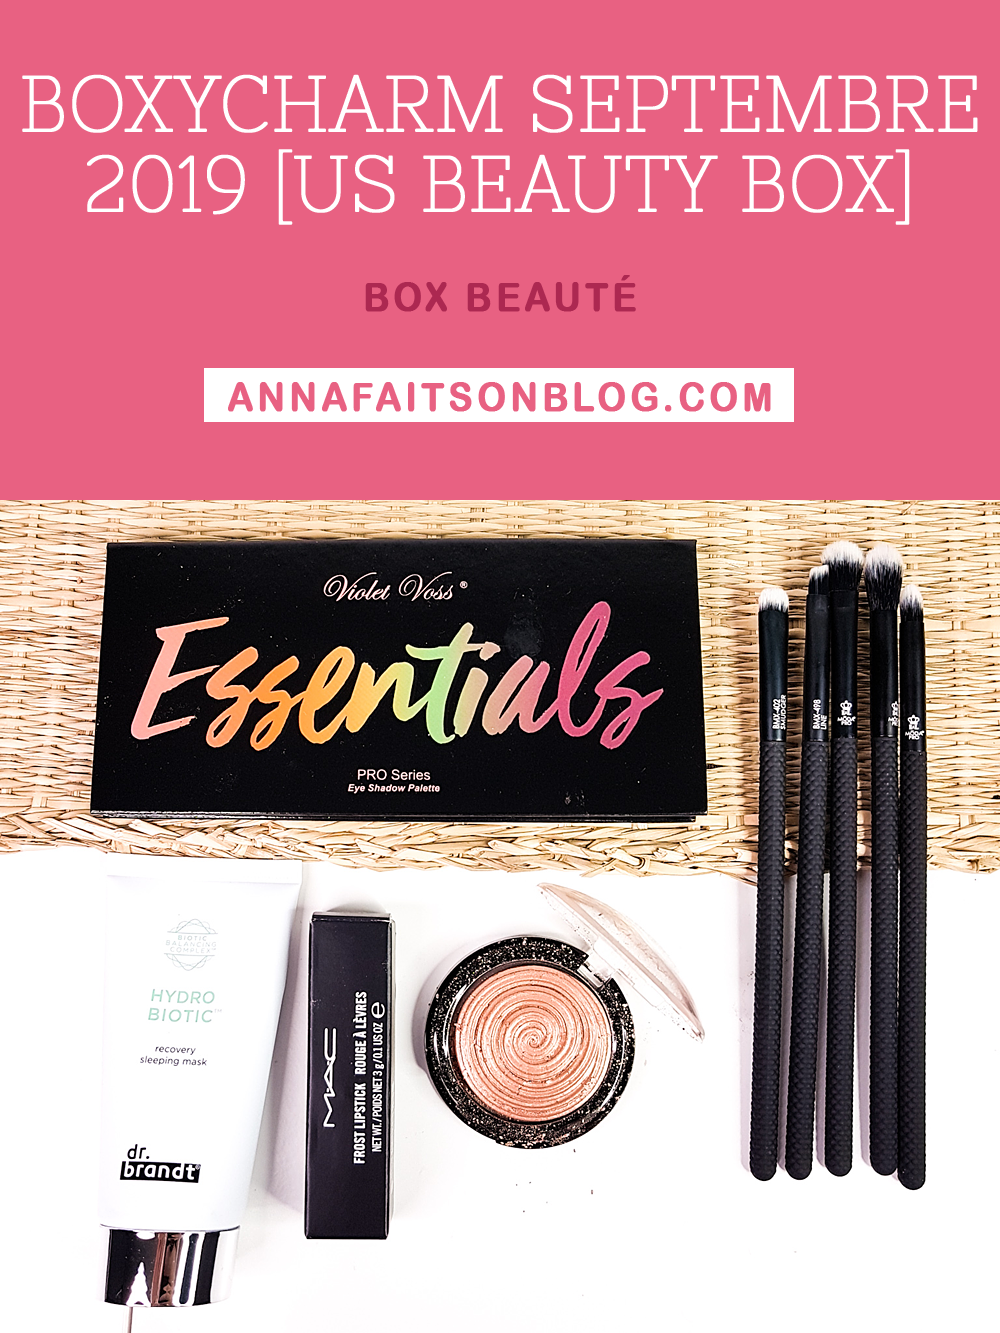 Boxycharm Septembre 2019